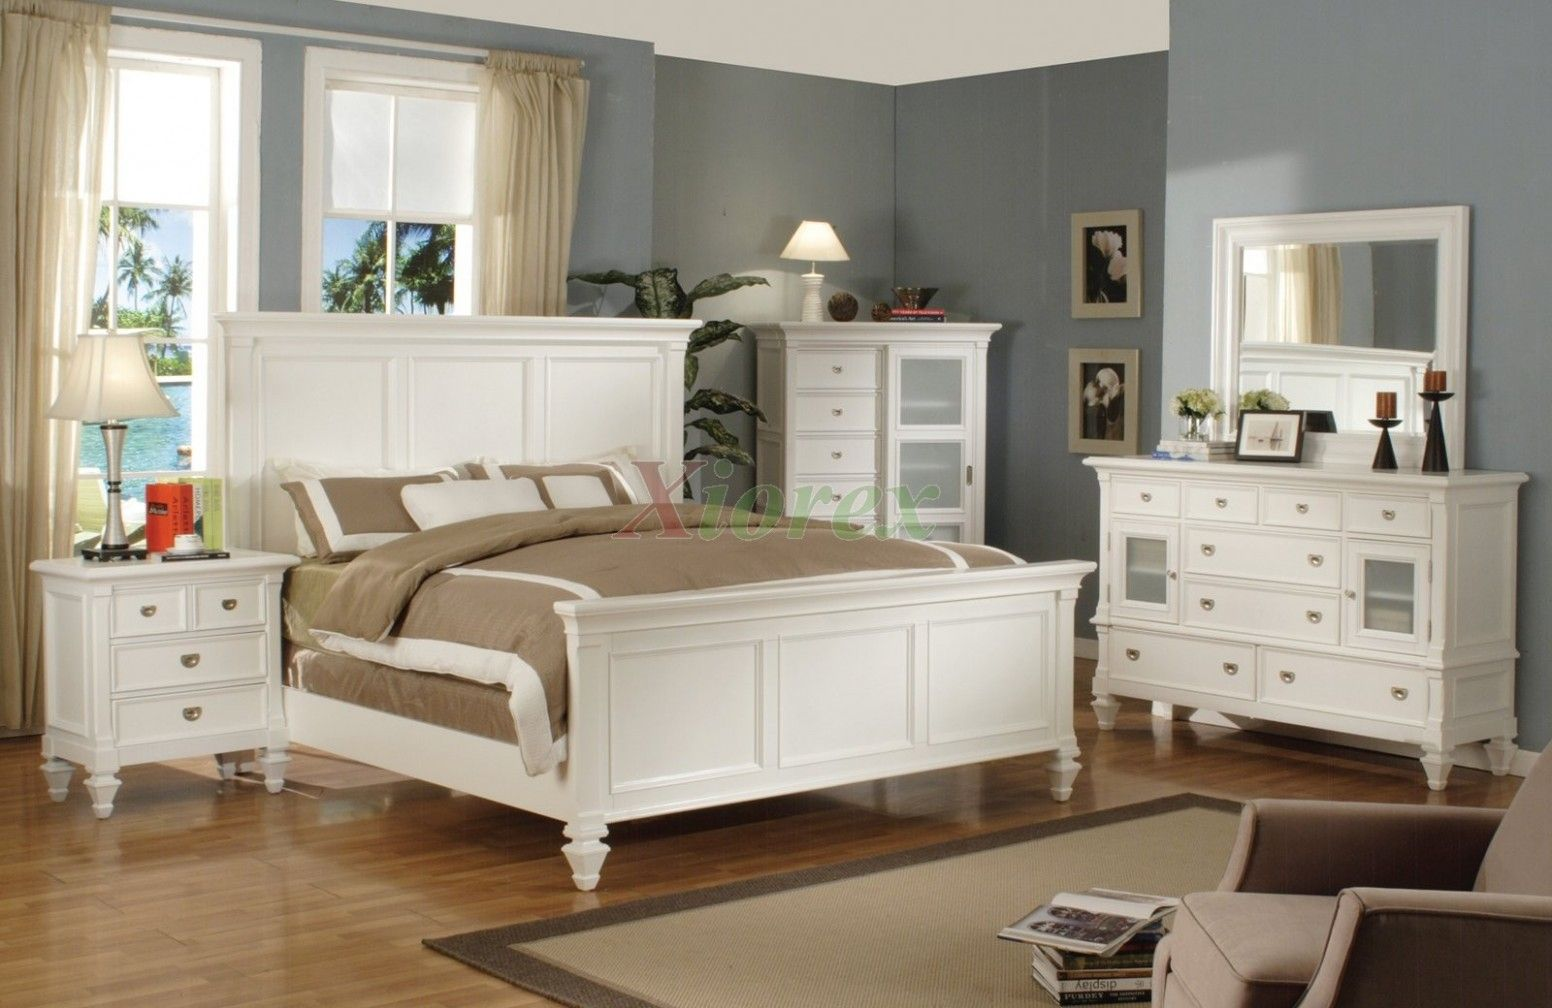 Bedroom Chairs Littlewoods in 10  White bedroom set, White